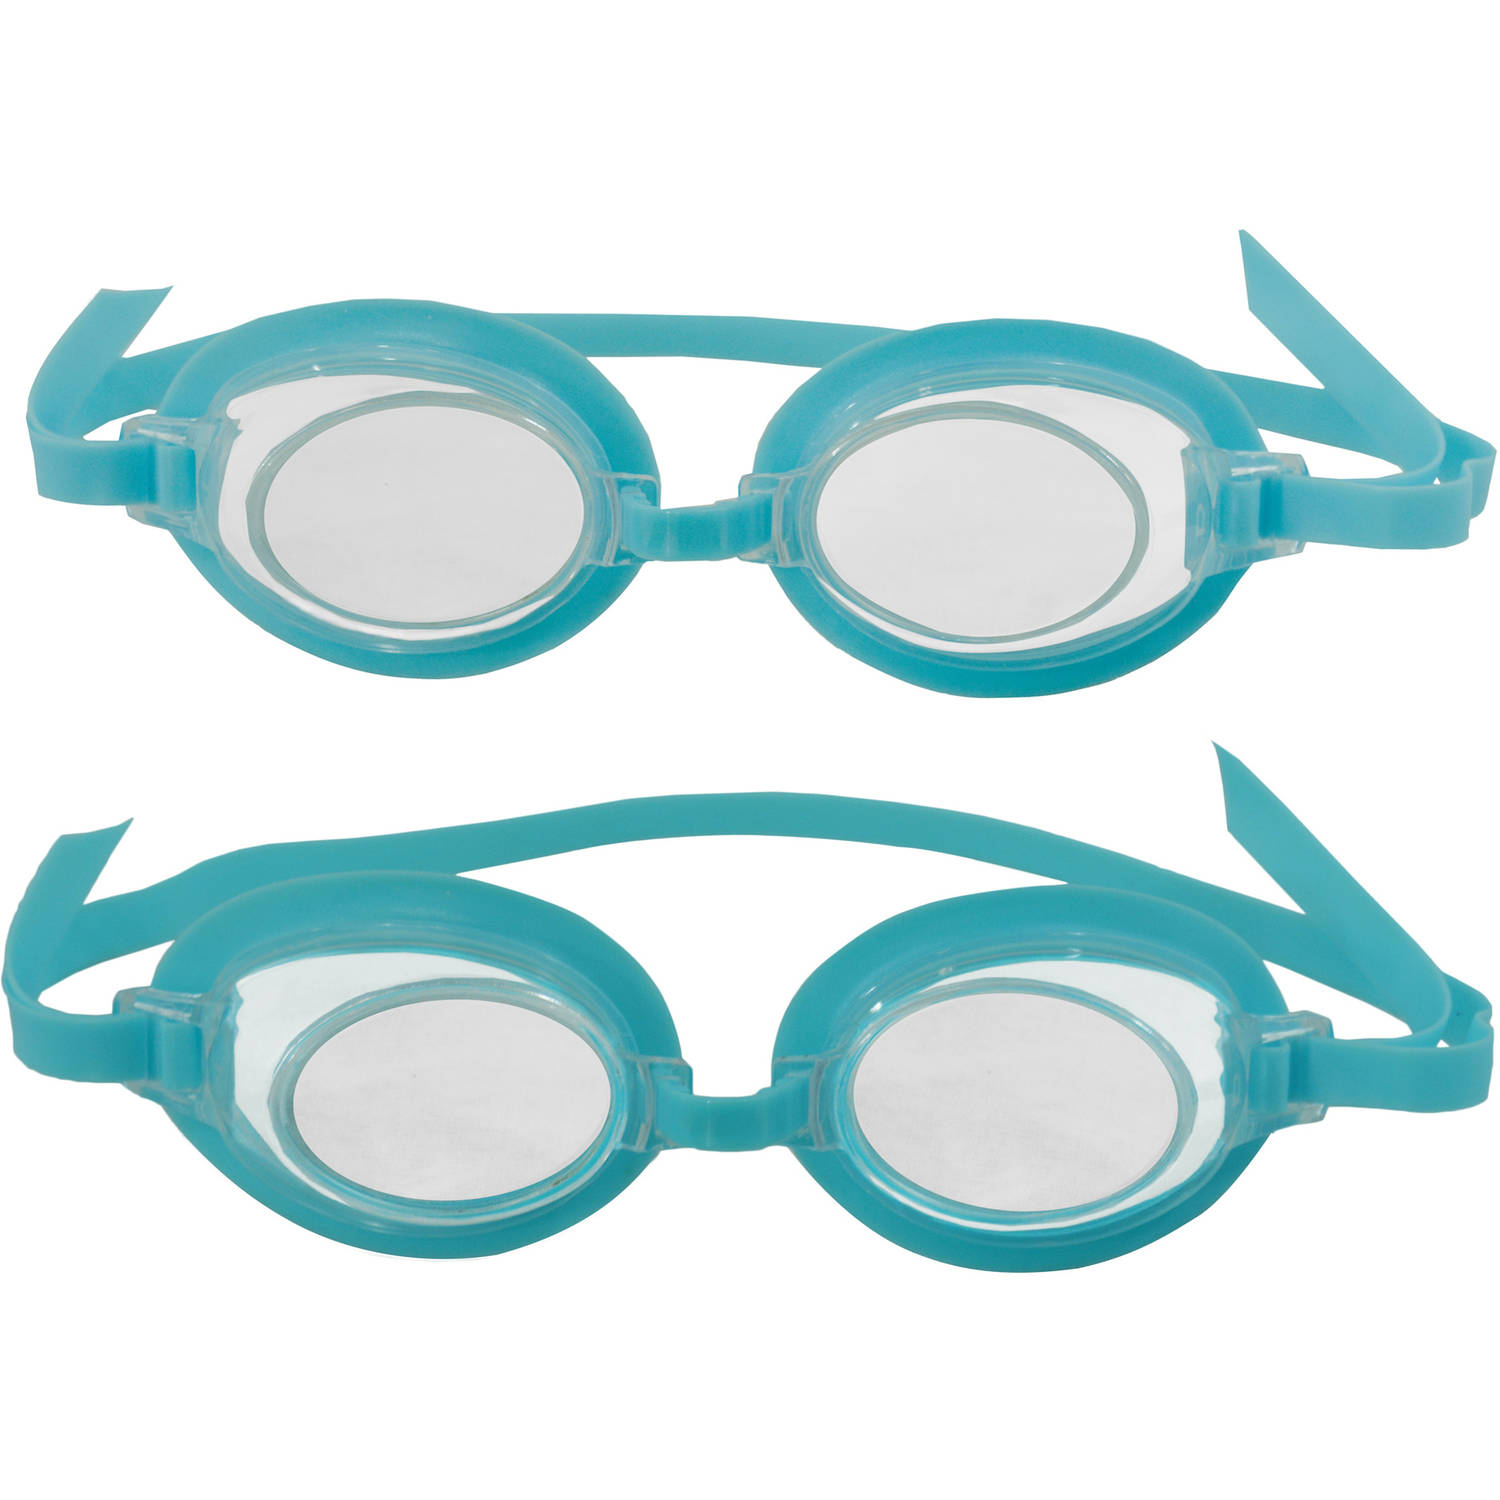 3D Action Kids Swim Goggles, 2pk by Blue Wave Products